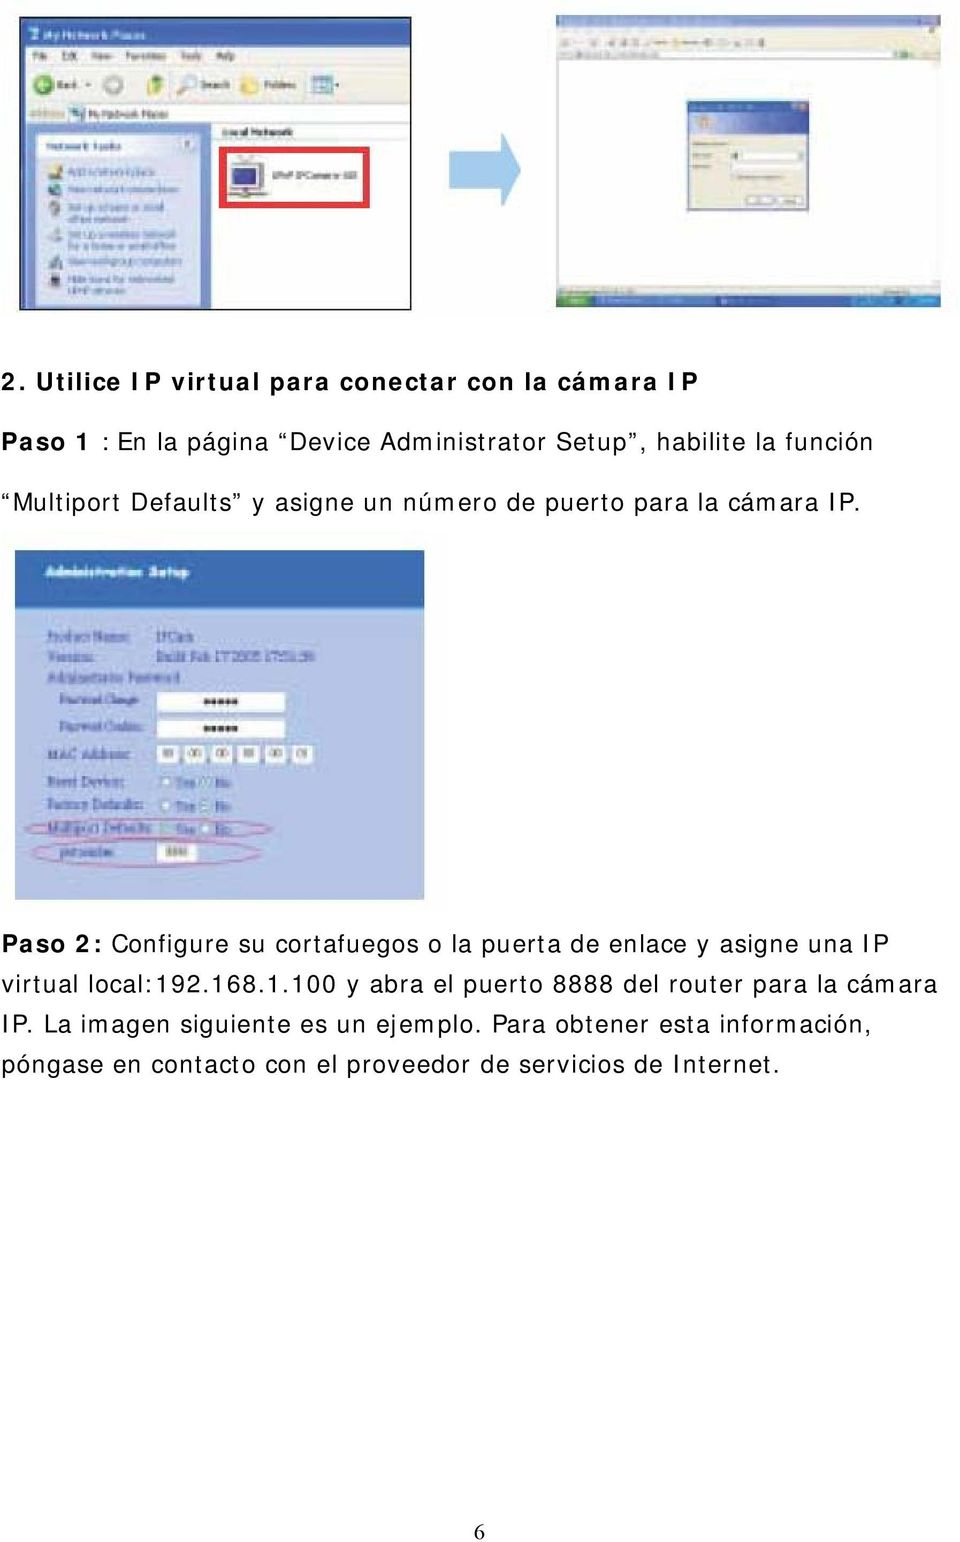 Paso 2: Configure su cortafuegos o la puerta de enlace y asigne una IP virtual local:19